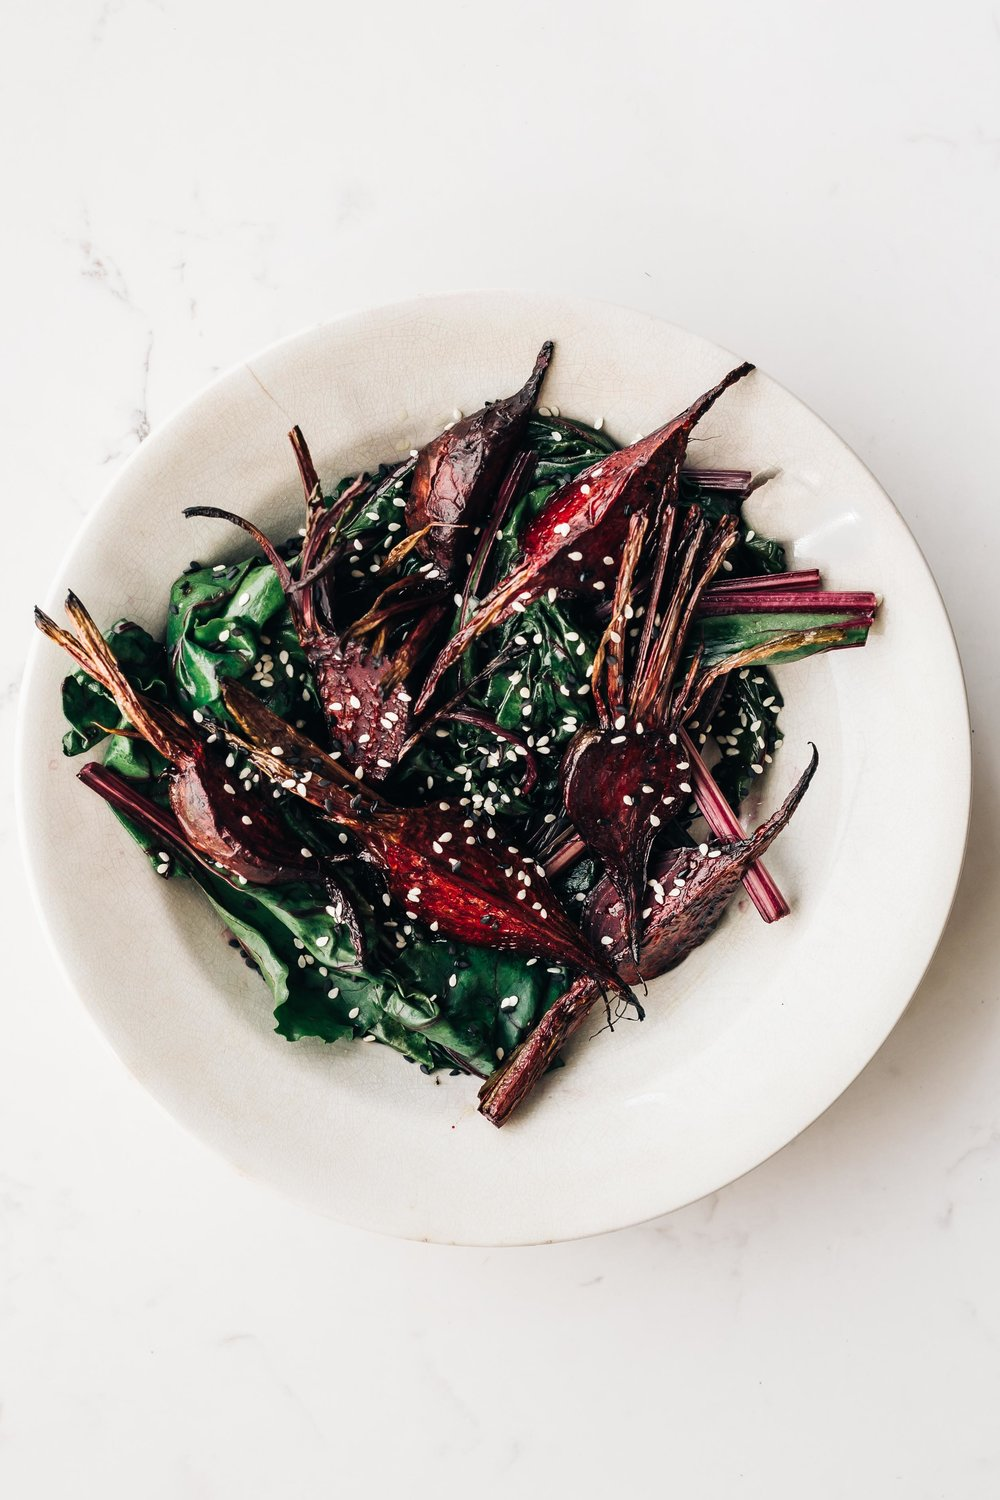 Sesame Ginger Roasted Beets